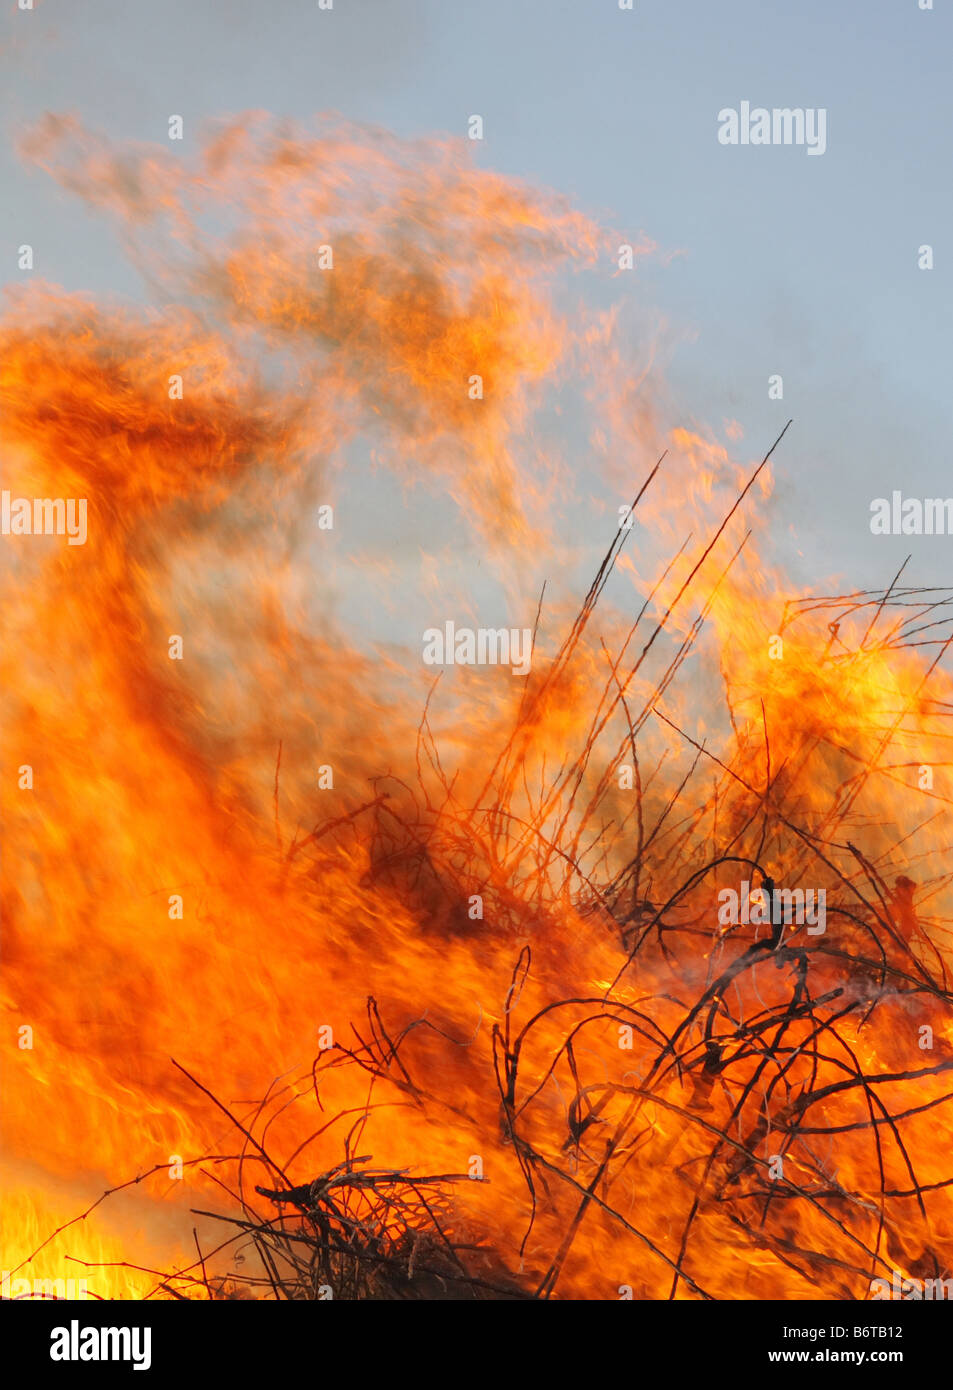 close-up of a large wildfire burning brush and debris - Stock Image